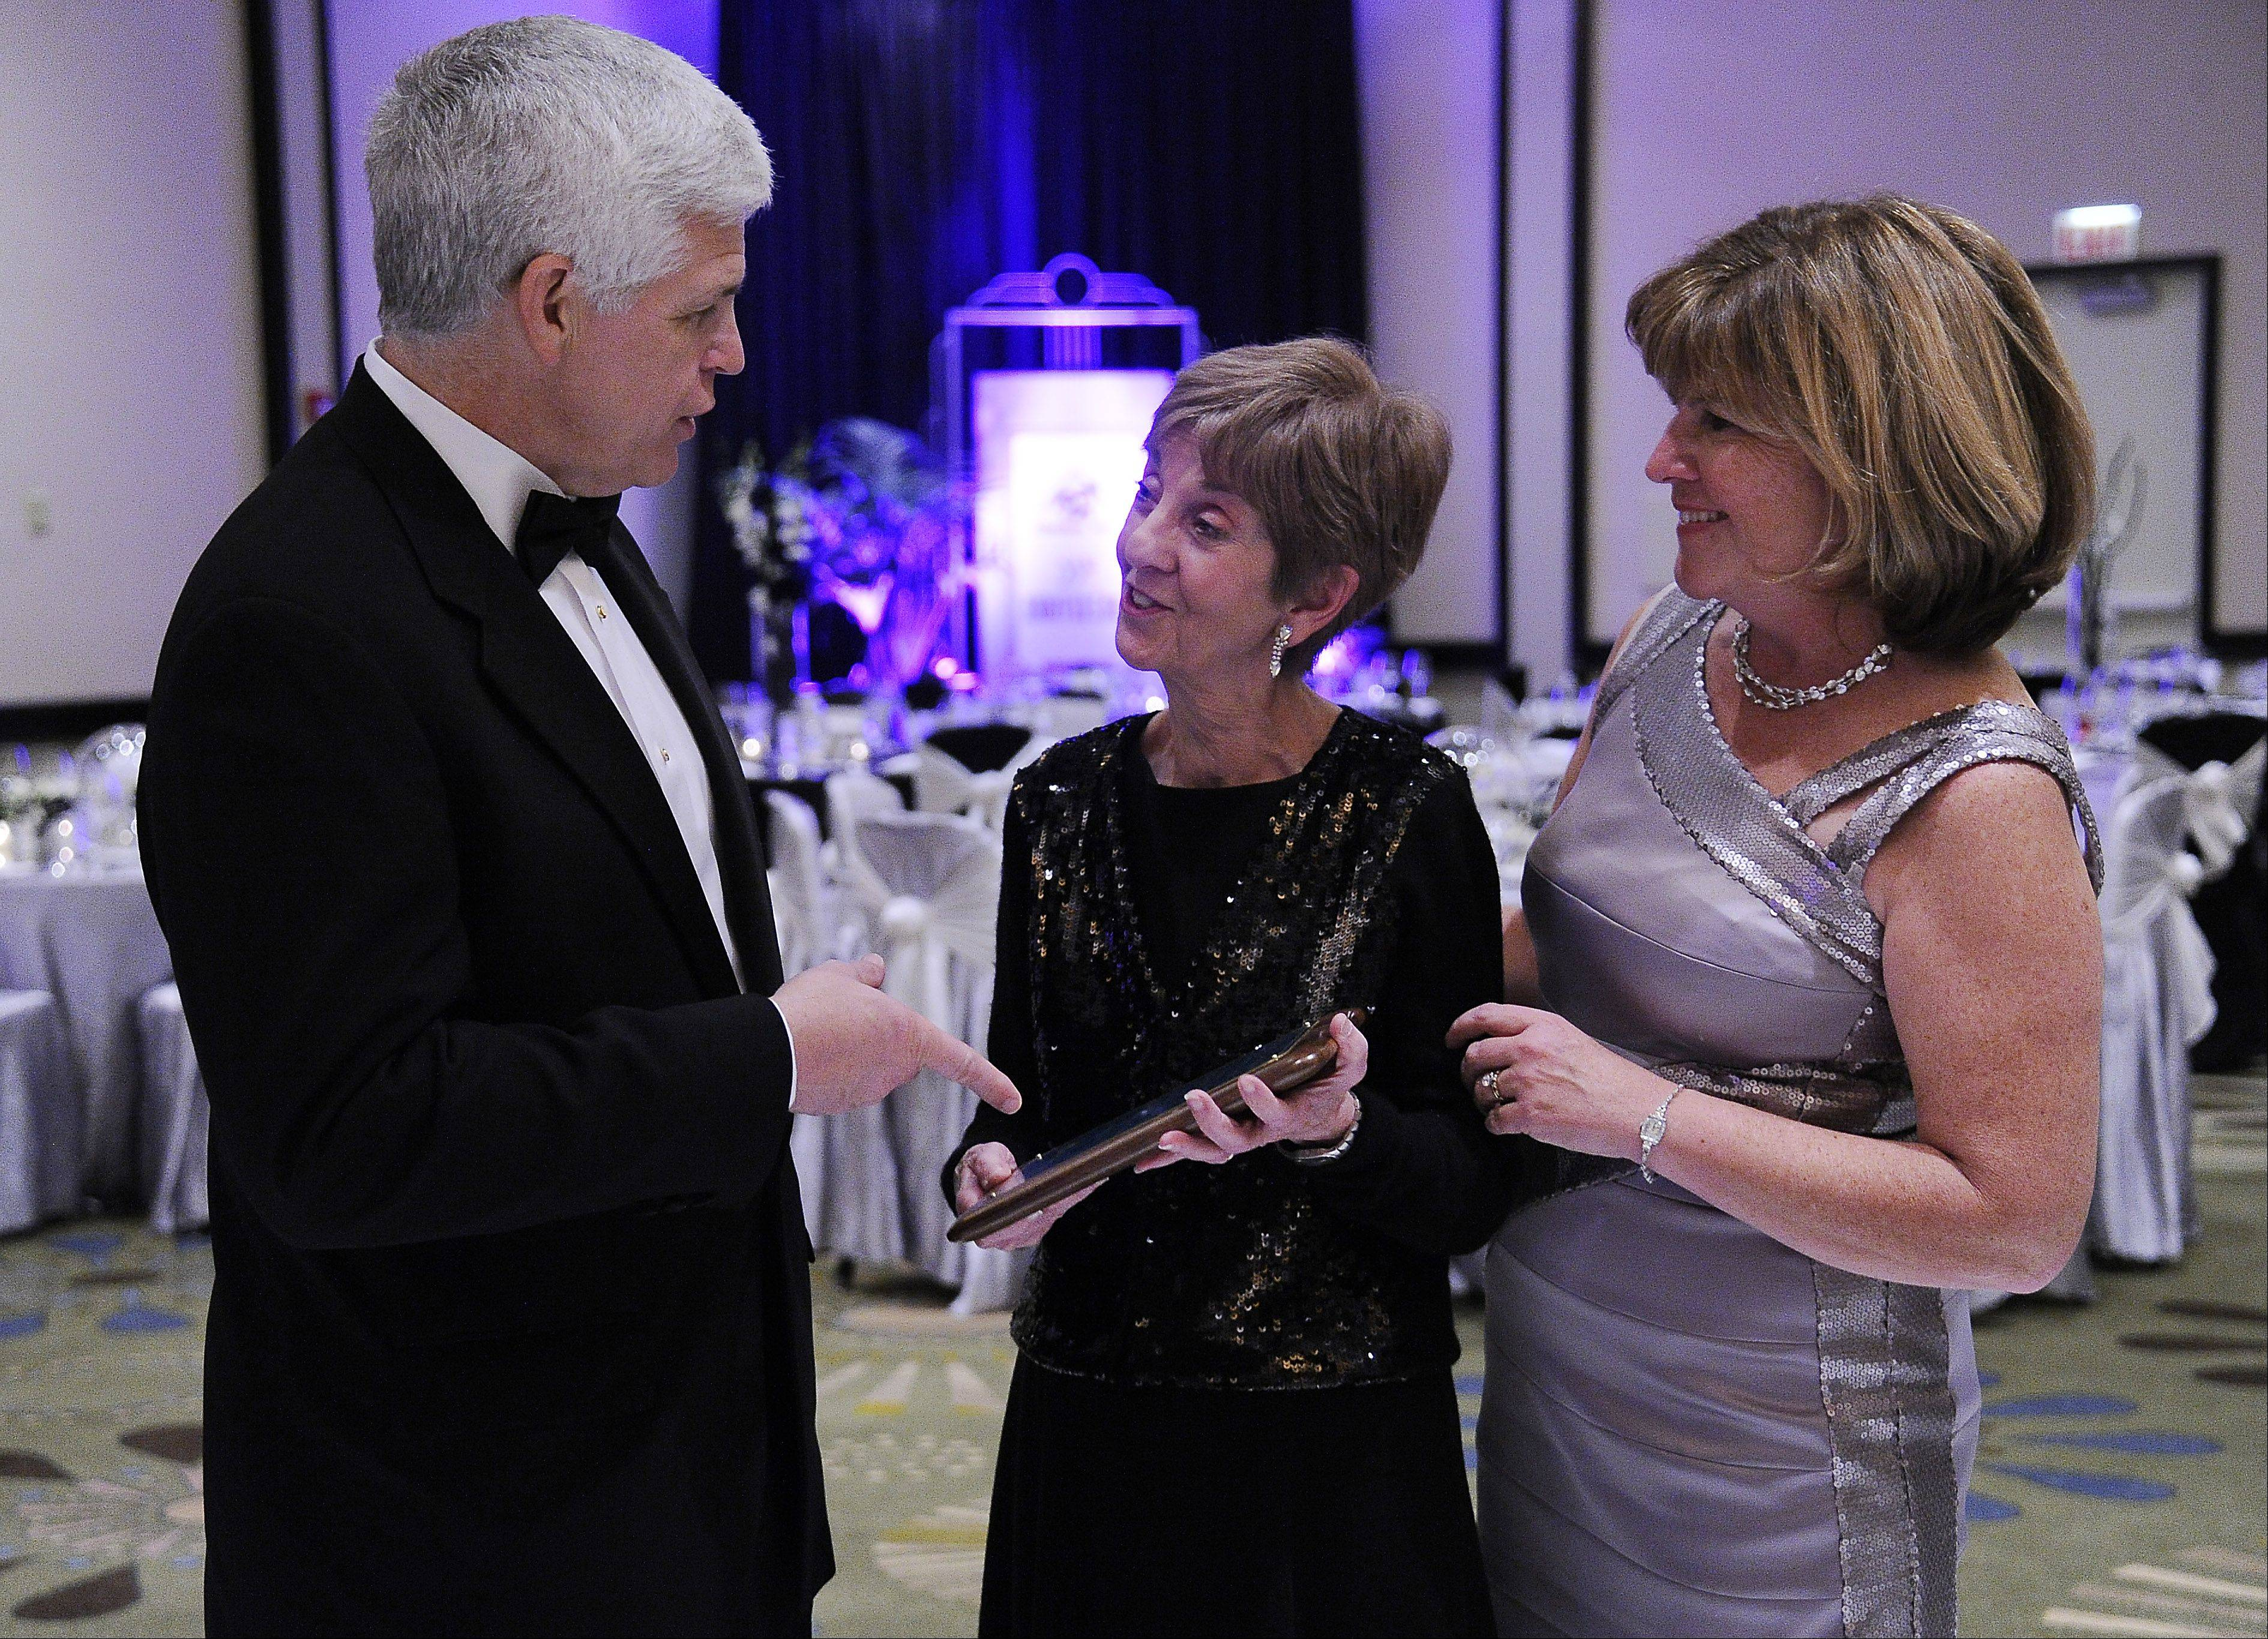 Pat Beck, center, executive director of Shelter Inc., presents the Paul Buckholz Award to Michael and Margaret Tower of Glenview on Friday at the 25th anniversary Charity Ball at the Hyatt in Schaumburg.